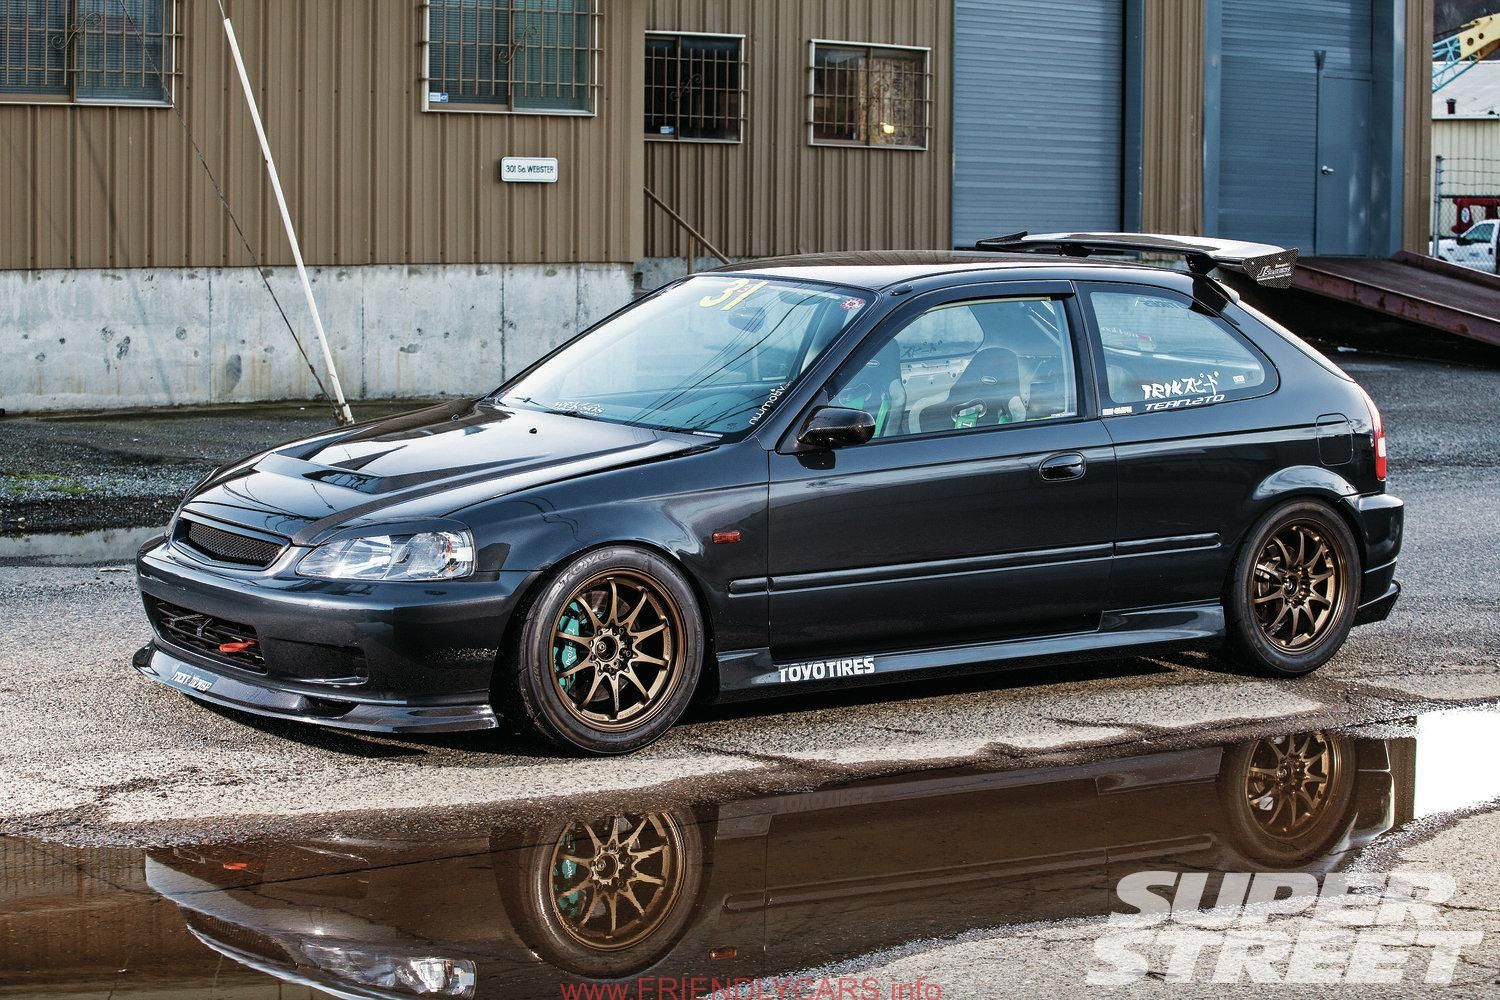 Picture of 1995 honda civic si hatchback exterior - Best 20 Honda Civic Dx Ideas On Pinterest Honda Civic Hatch Honda Civic Vtec And Honda Civic Rims